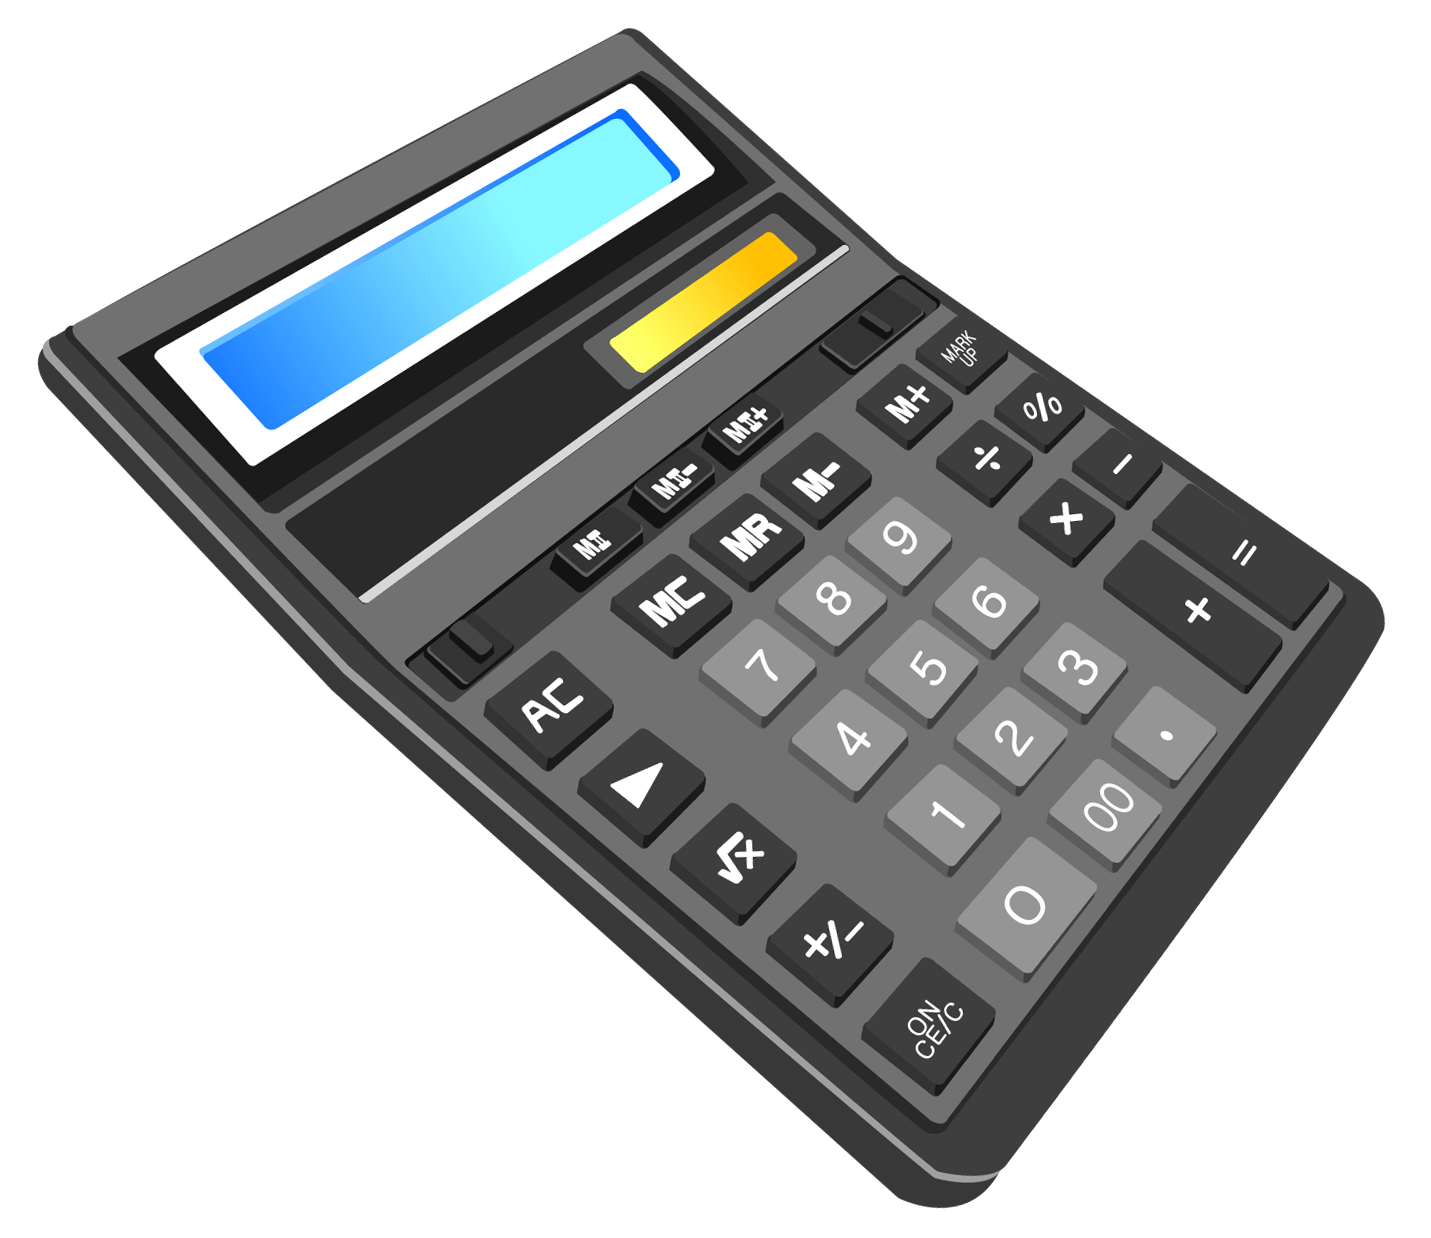 Calculator PNG image free download.